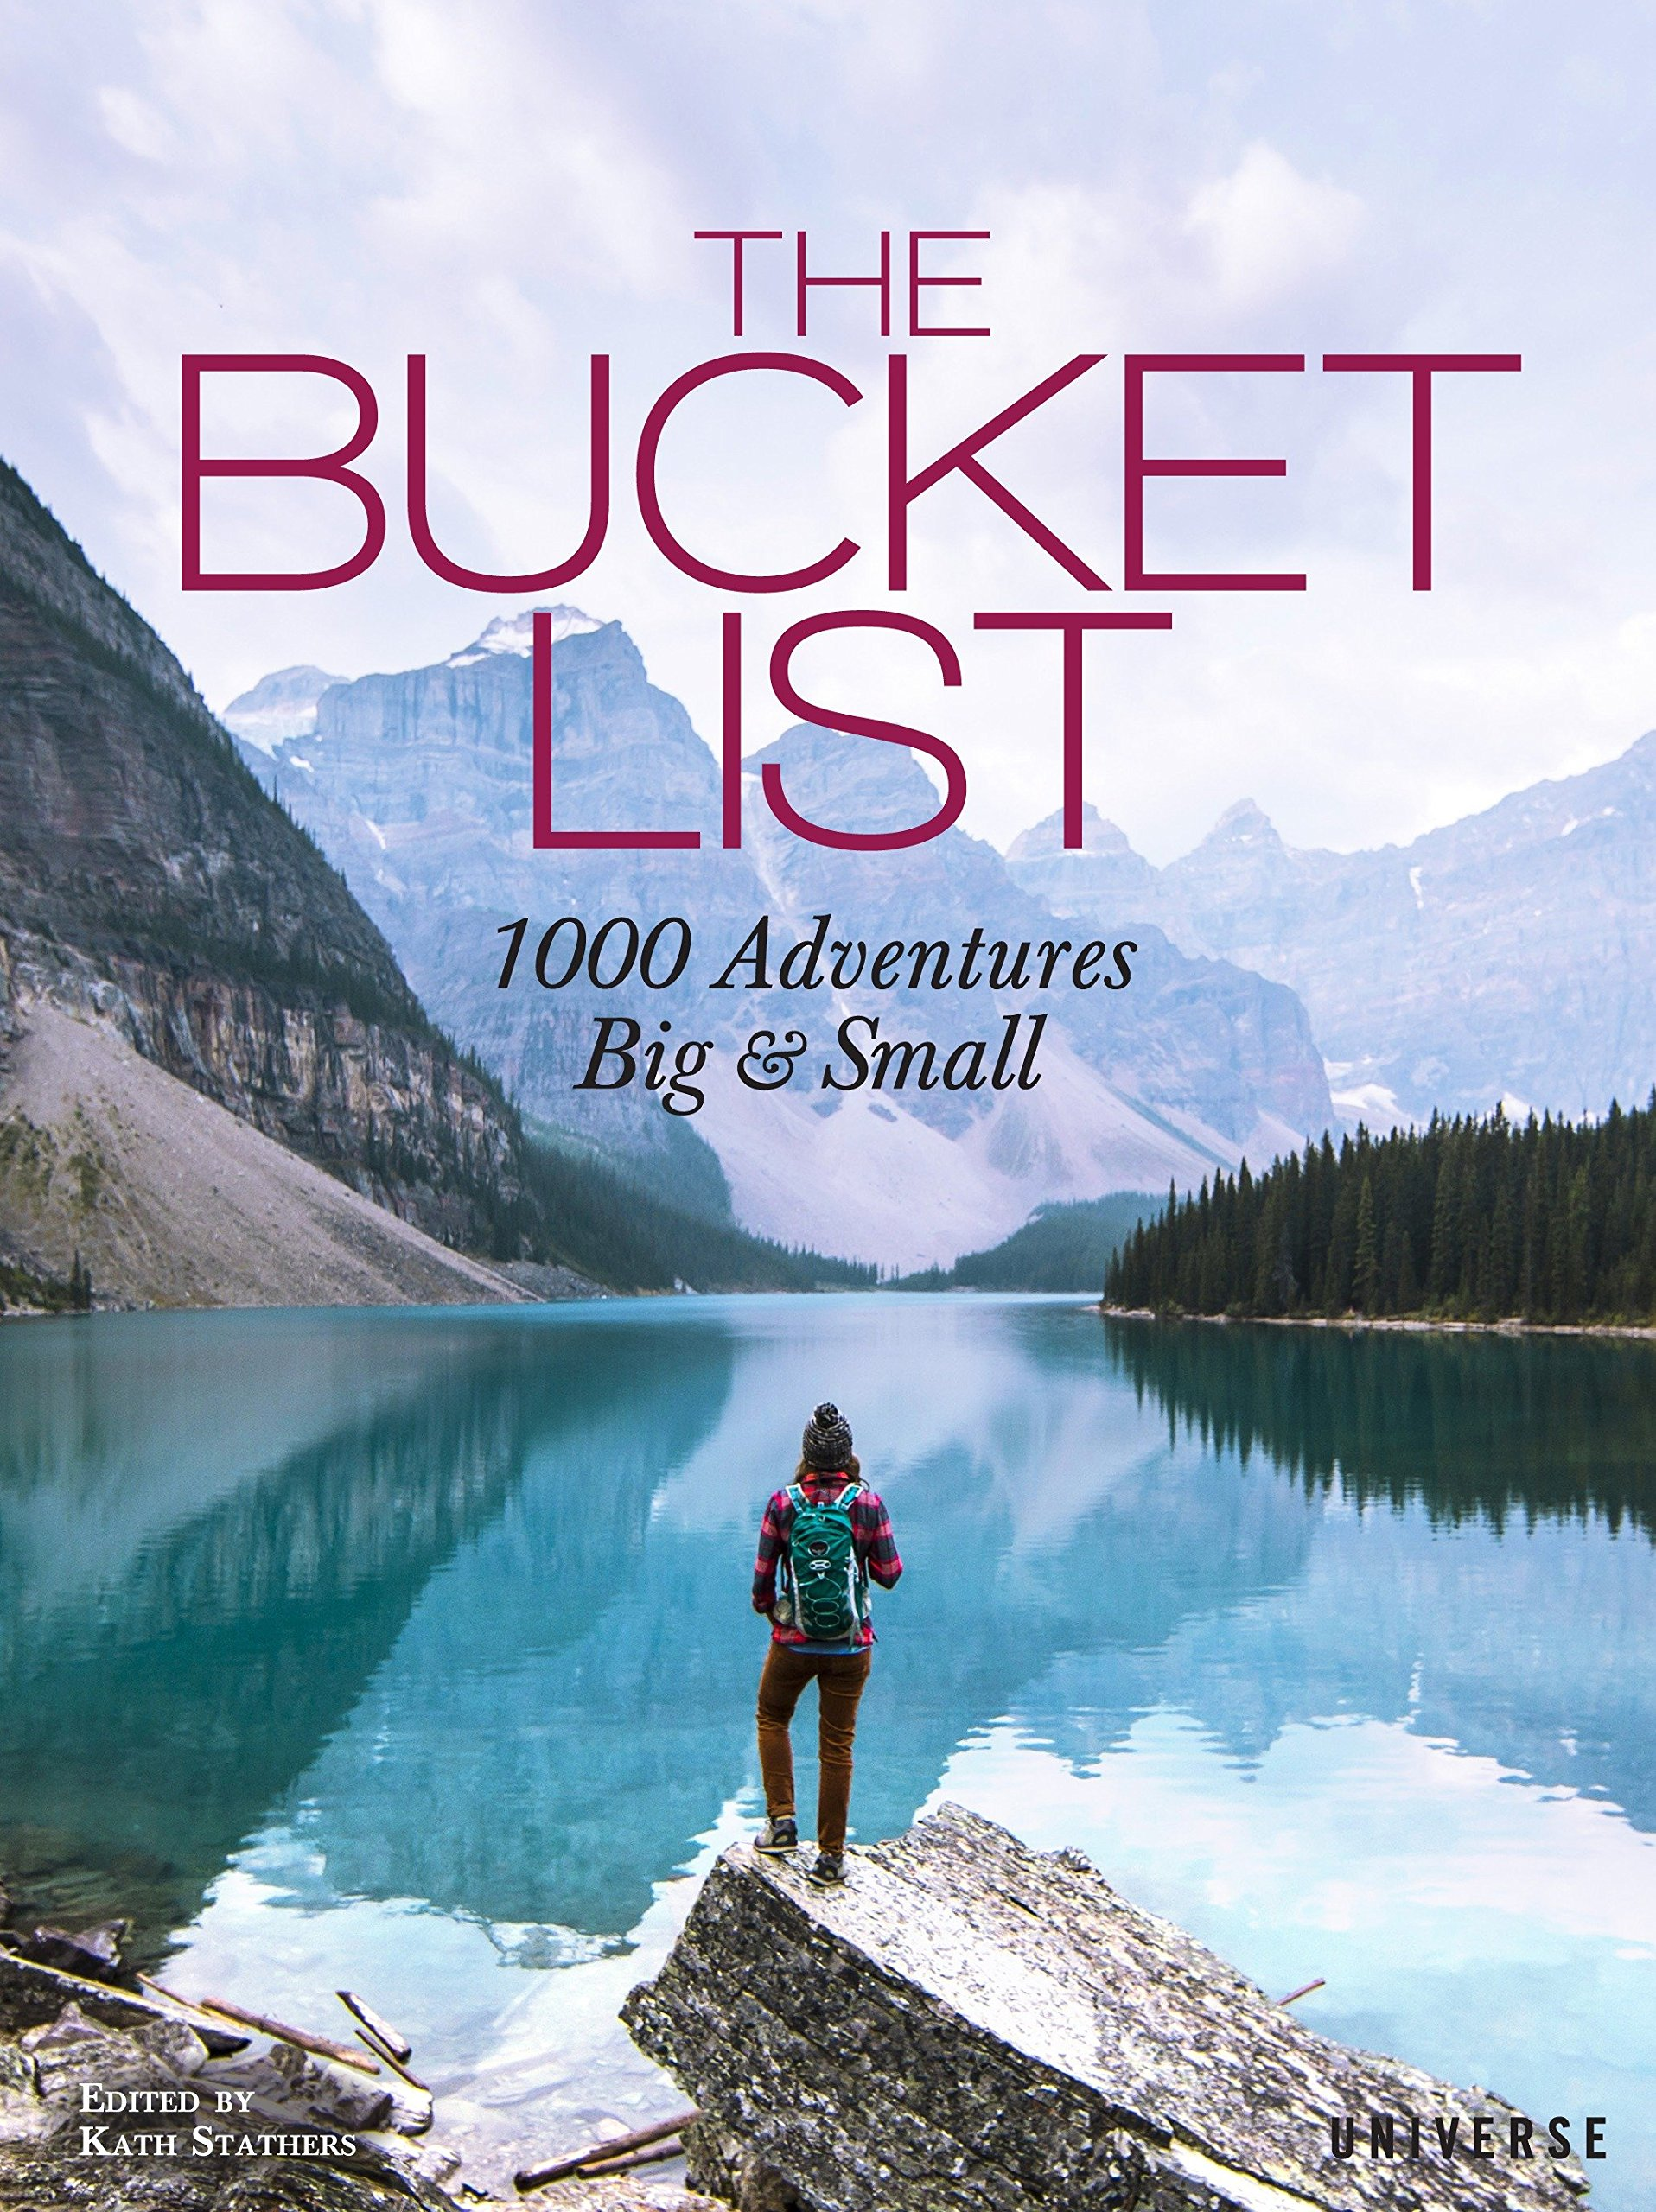 The Bucket List: 1000 Adventures Big & SmallHardcover by Kath Stathers